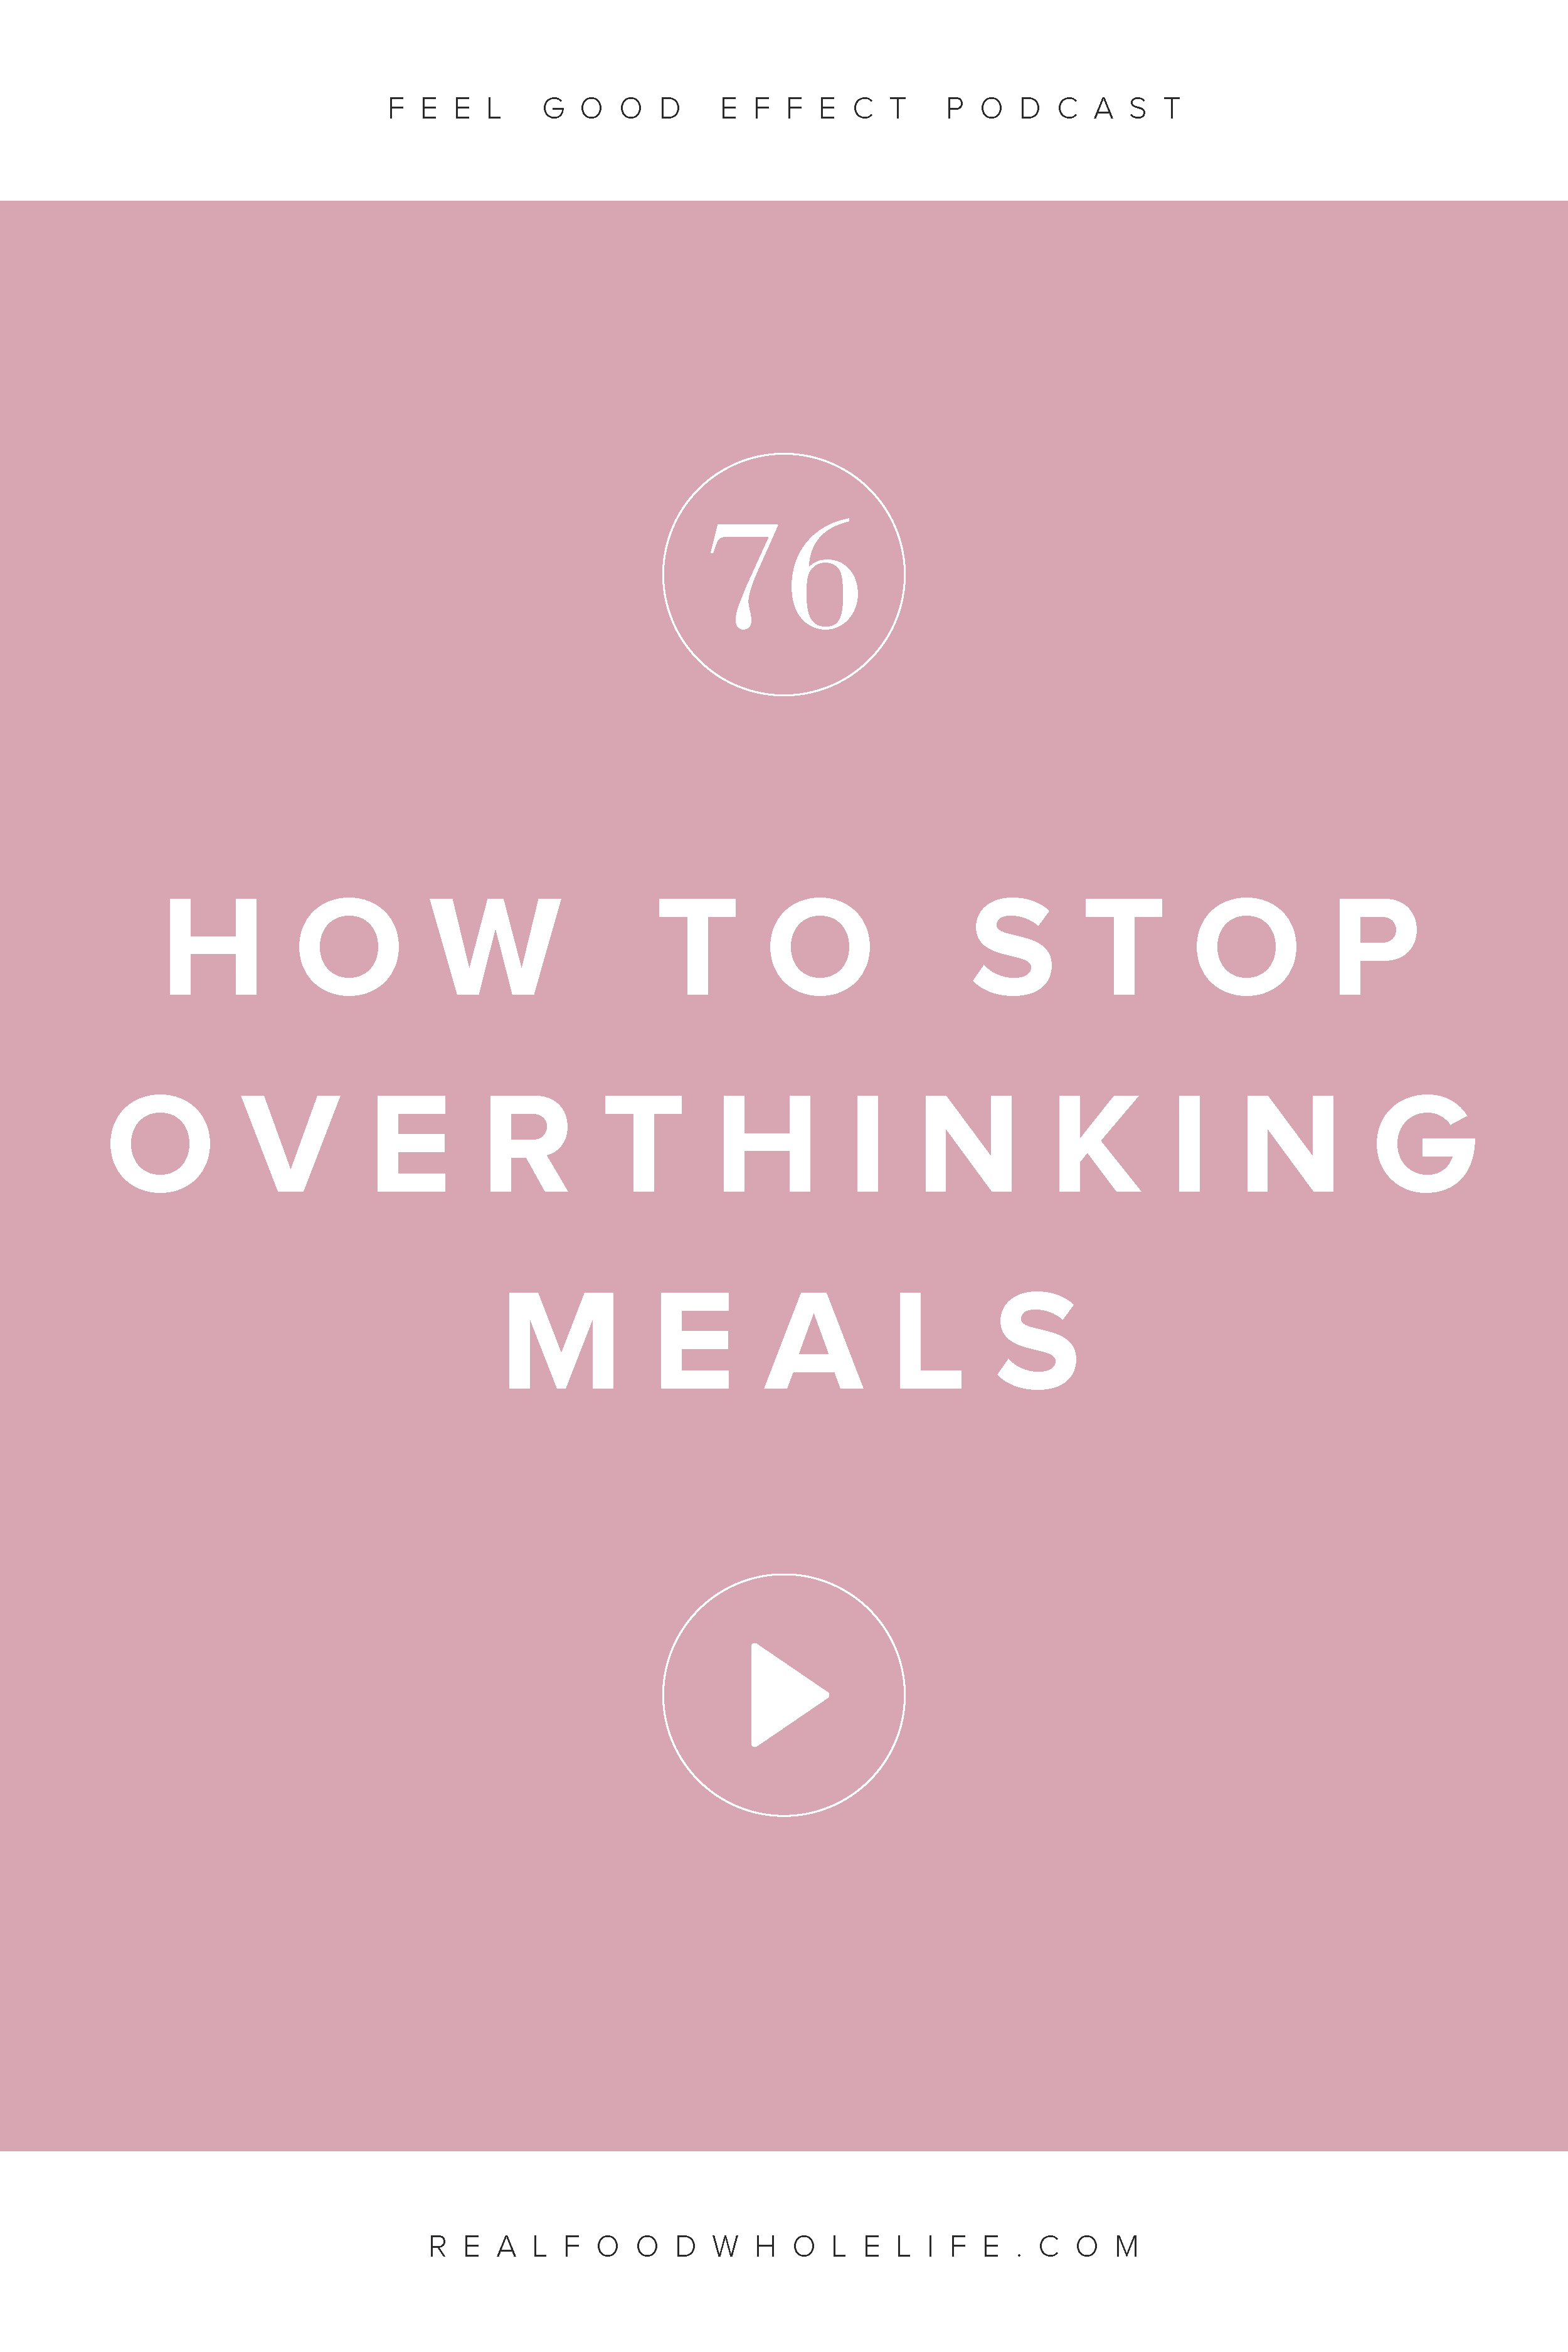 How to Stop Overthinking Meals, an episode form the Feel Good Effect Podcast. #feelgoodeffect #realfoodwholelife #wellnesspodcast #healthy #gentleisthenewperfect #gentlewellnessrevolution